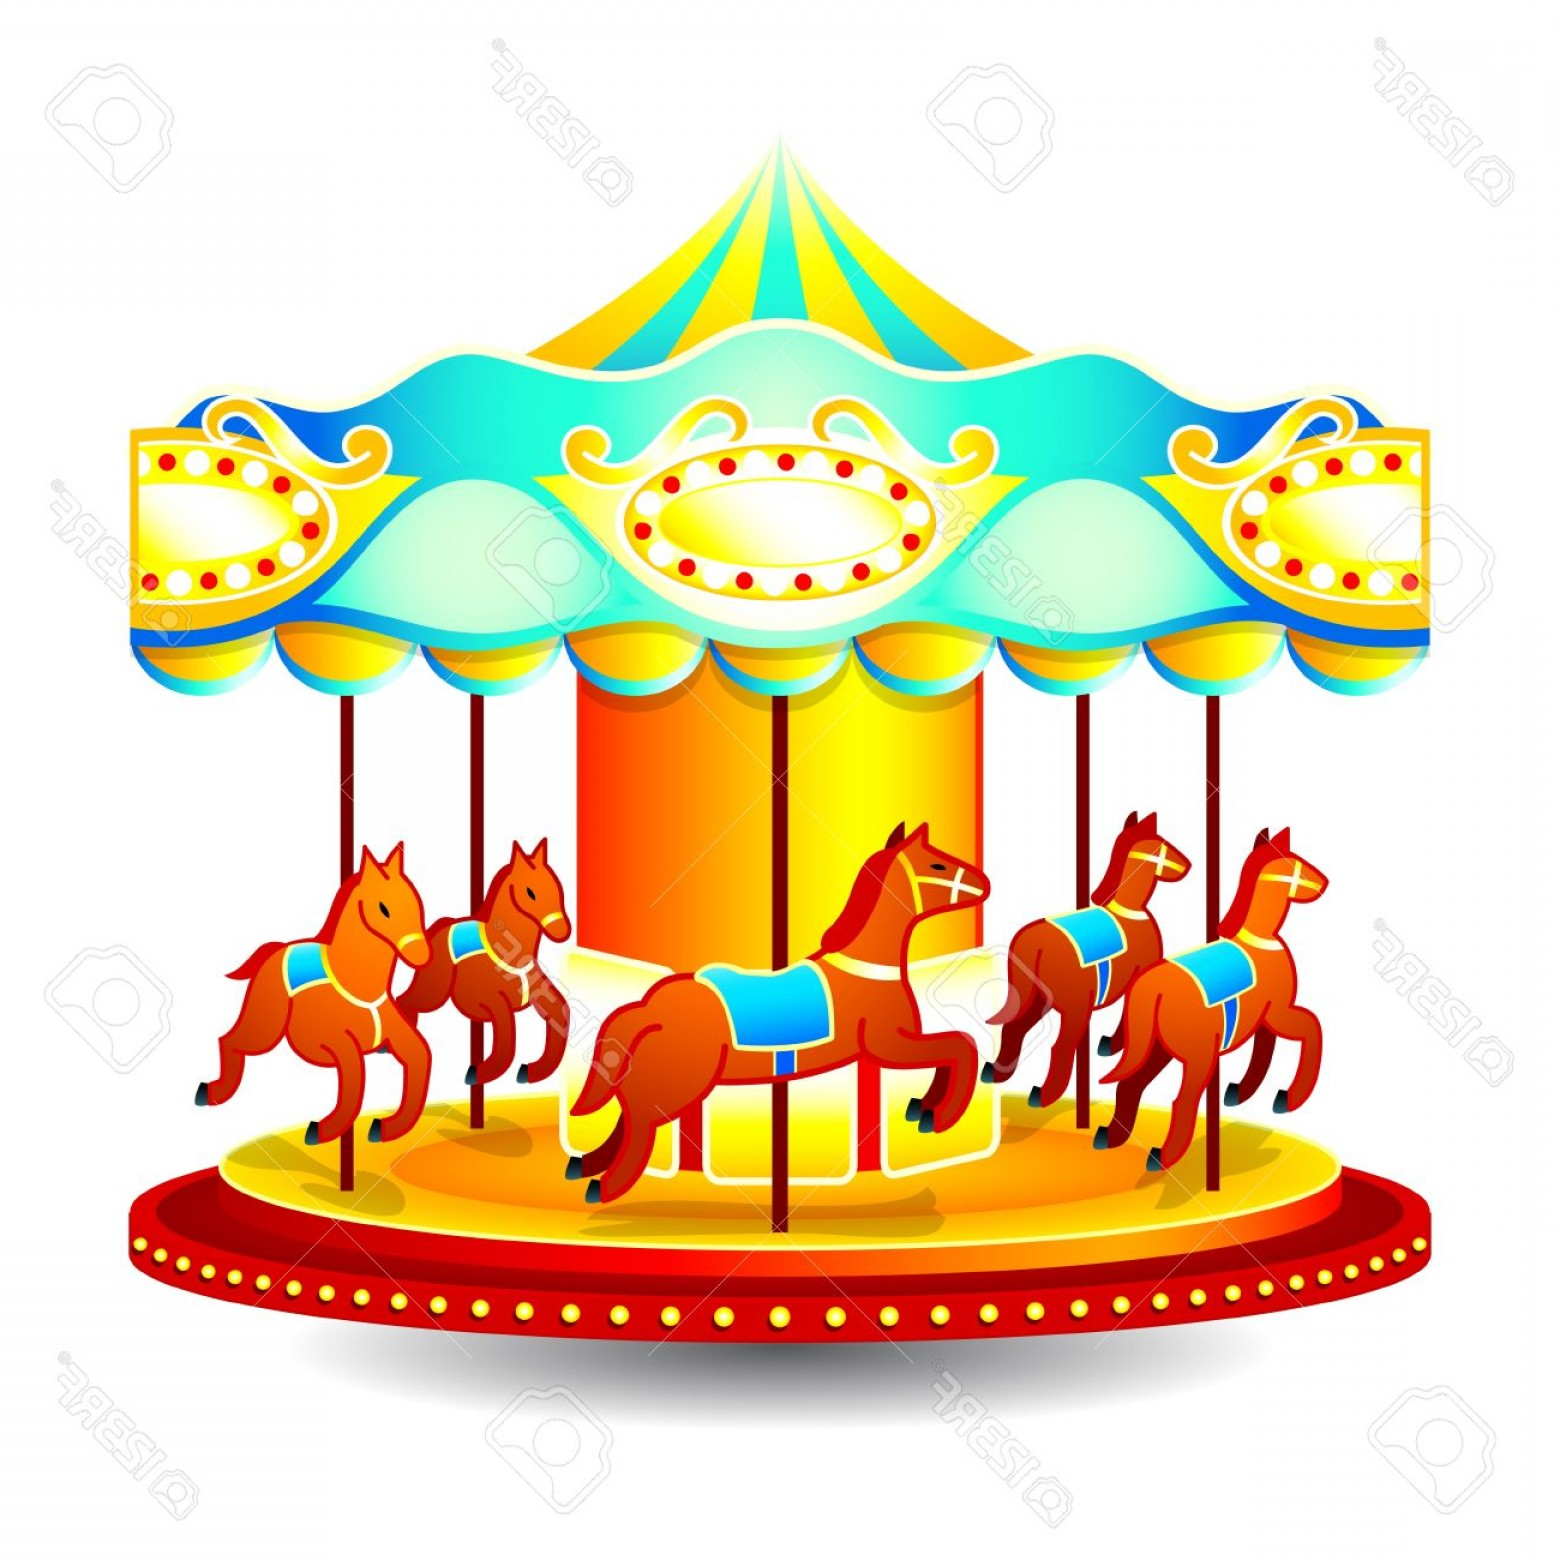 Fair clipart mary go round. Merry horse to color